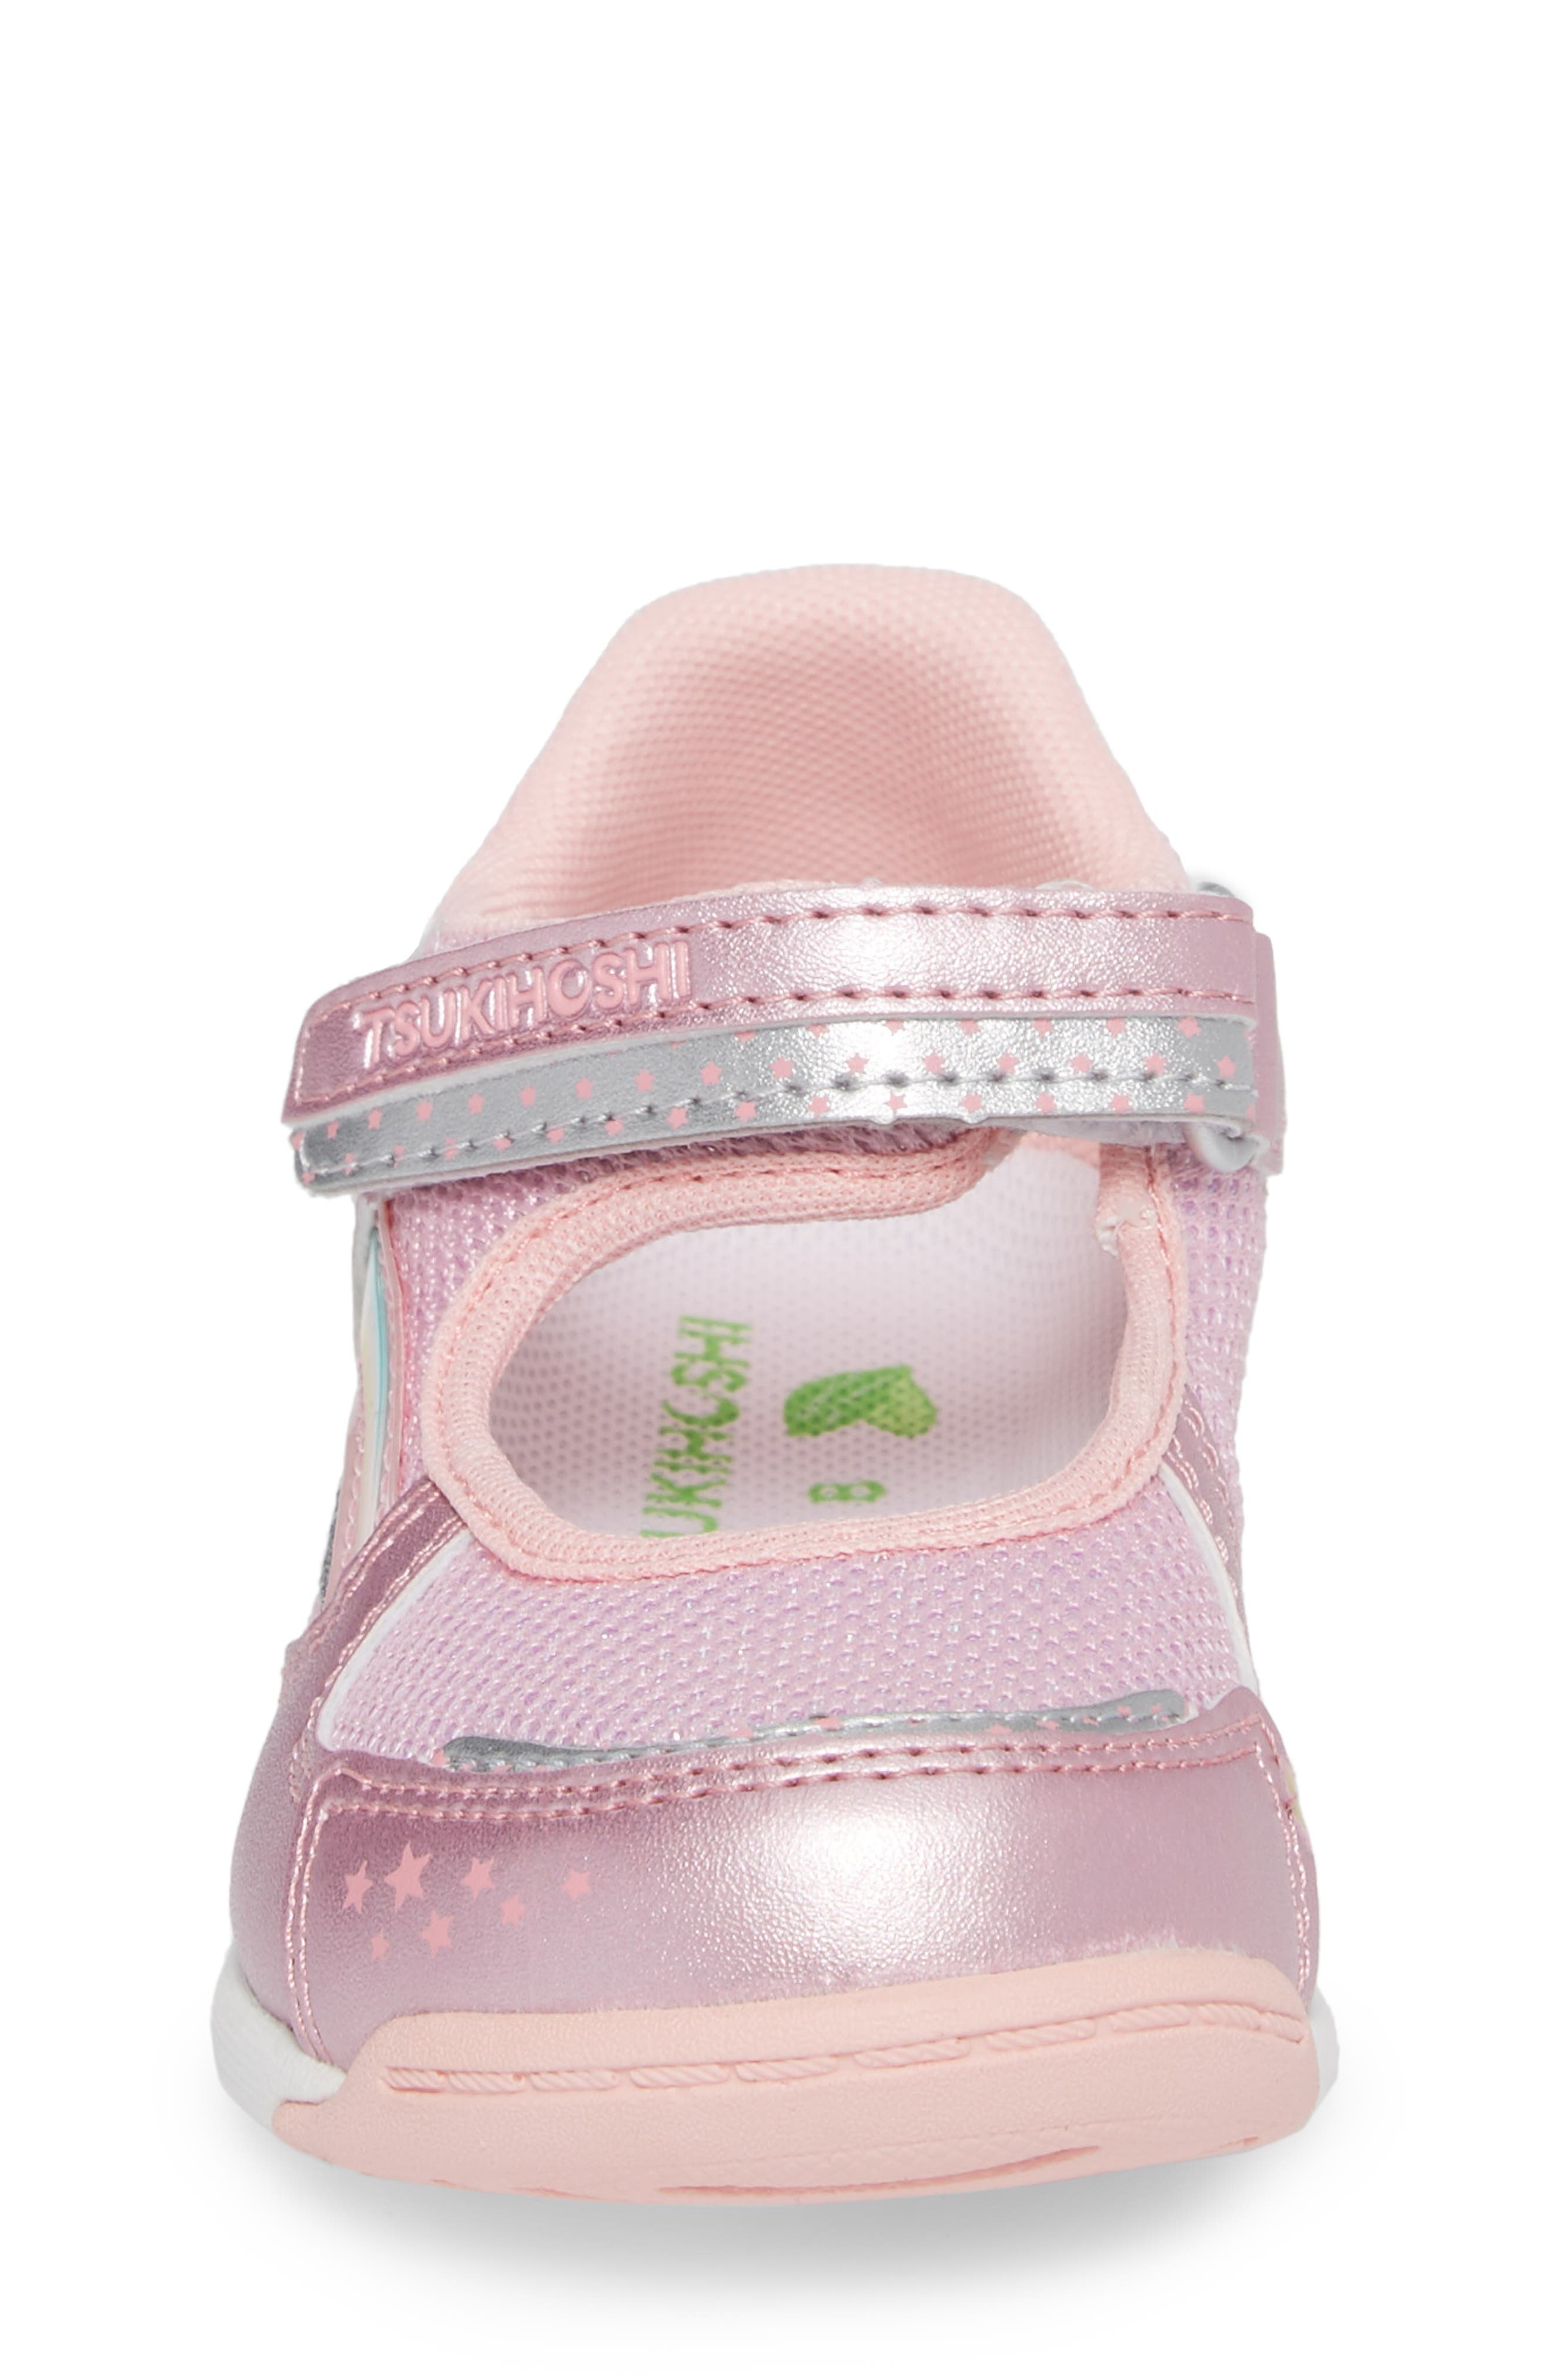 Twinkle Washable Sneaker,                             Alternate thumbnail 4, color,                             Rose/ Pink